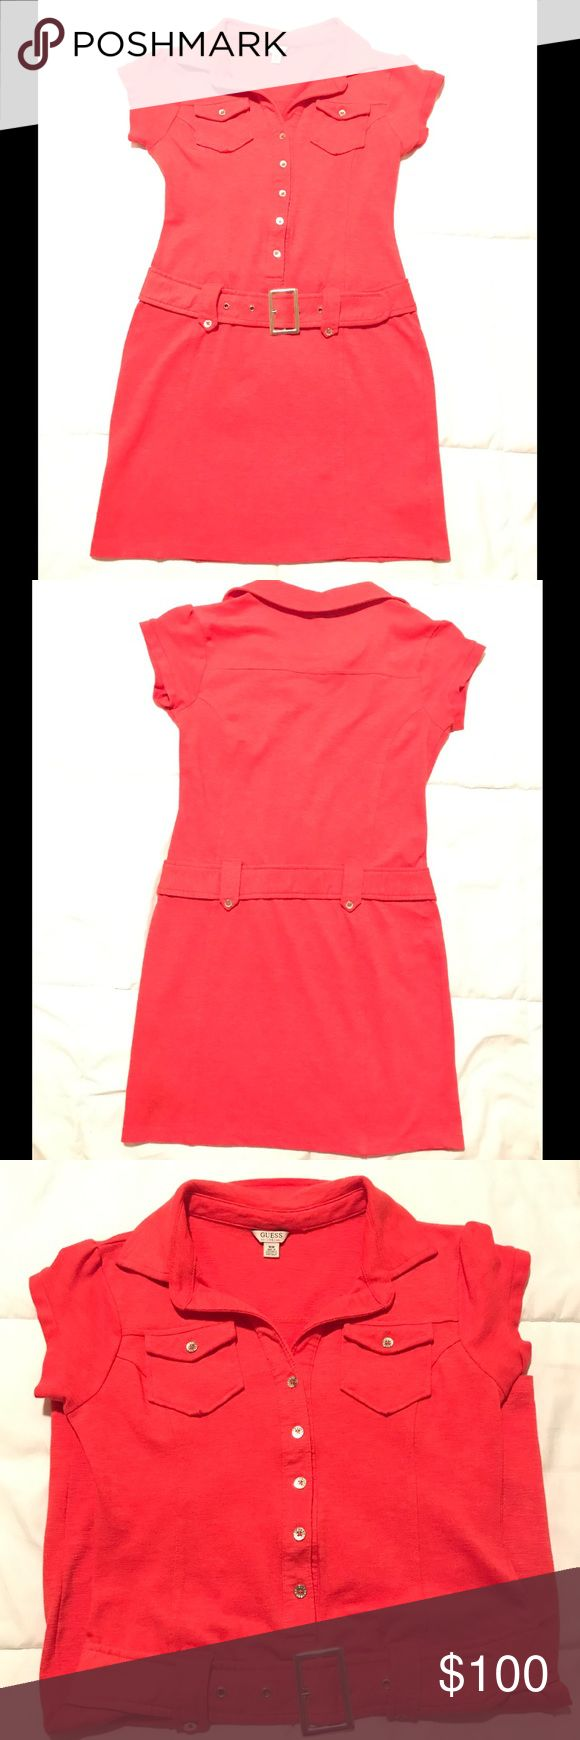 Guess Dress Worn Once. Belt is not removable. Good Fit. Red Pinkish color. Guess Dresses Mini